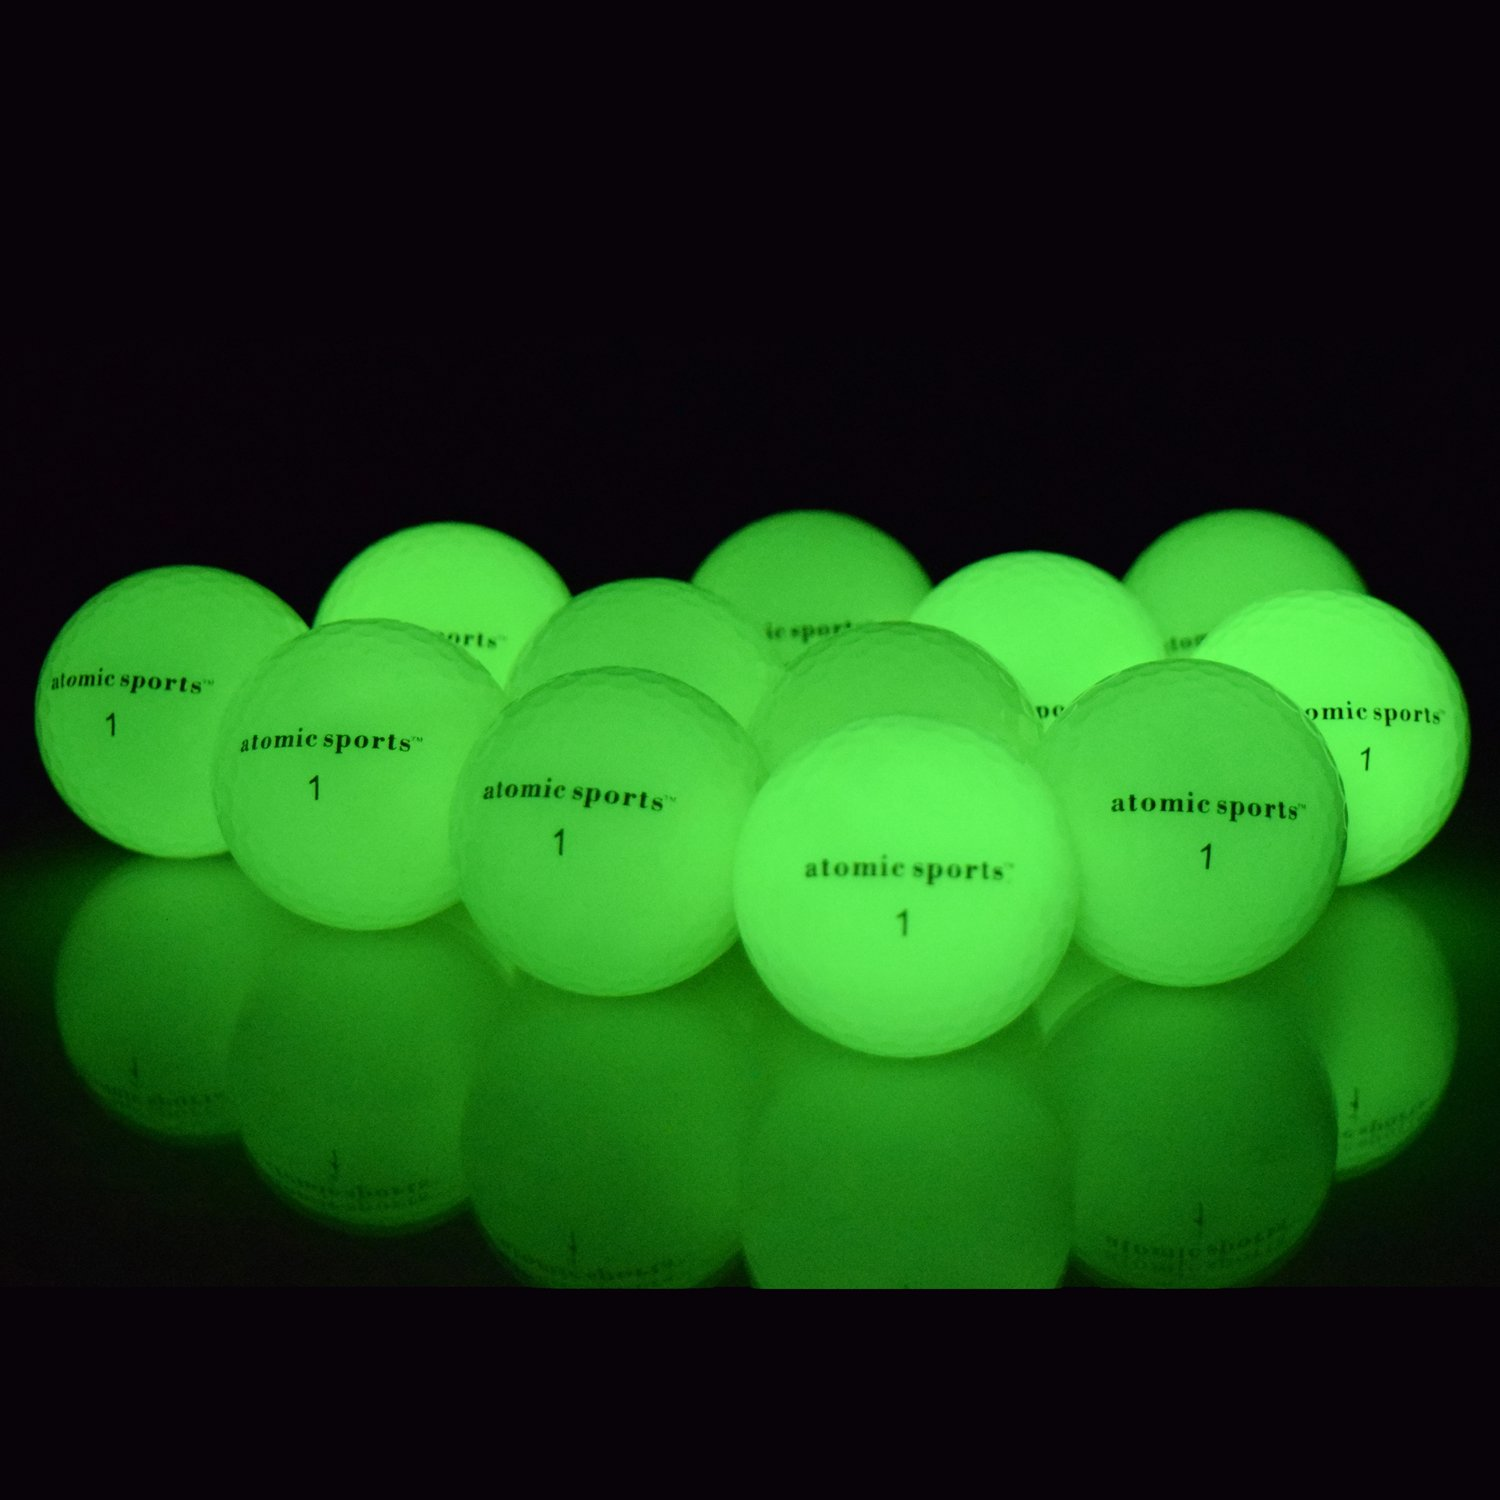 atomic sports 12 Golf Balls - Glow in the Dark Golf Balls